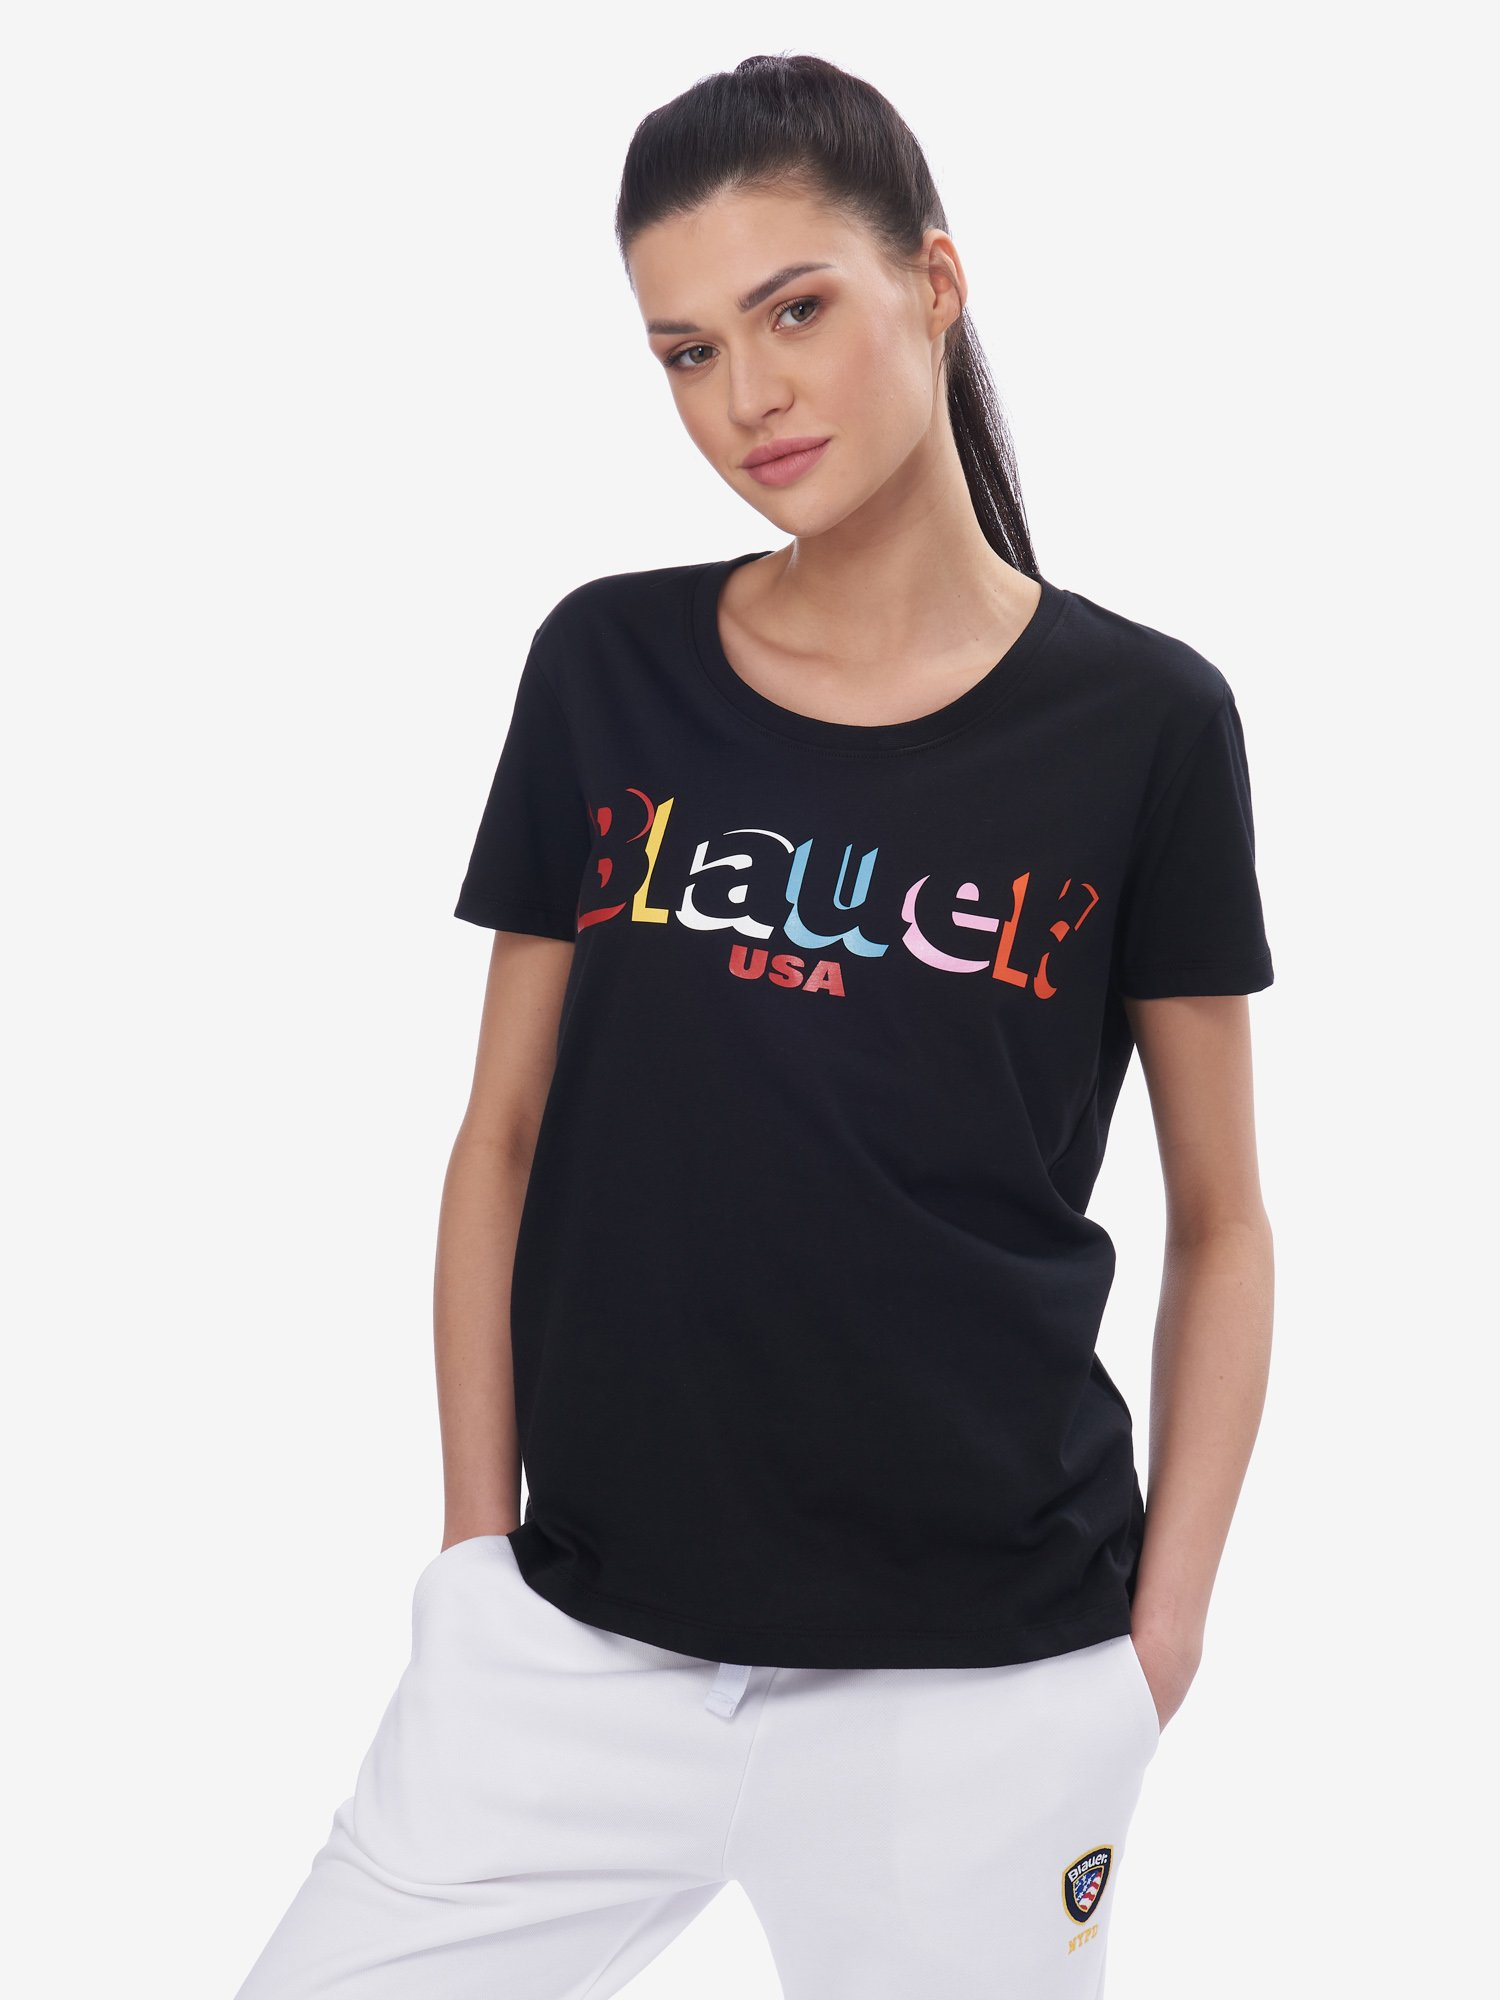 Blauer - COLOURFUL BLAUER T-SHIRT - Black - Blauer